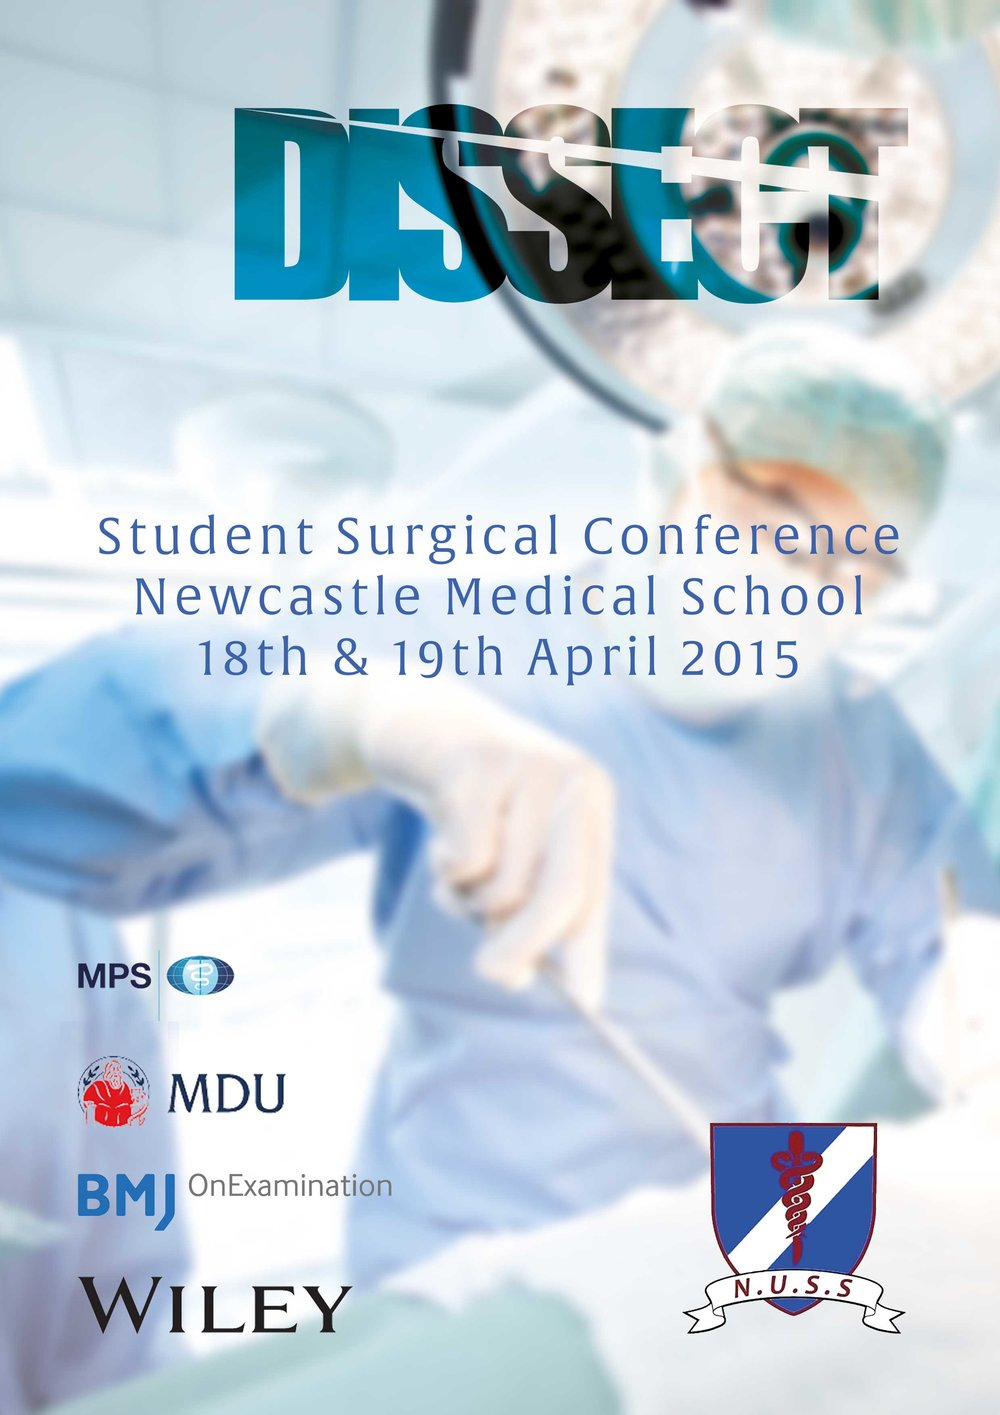 Newcastle University Surgical Society - DISSECT conference poster - THAT Branding Company - Creative Design and Branding Agency in Newcastle and Gateshead.jpg